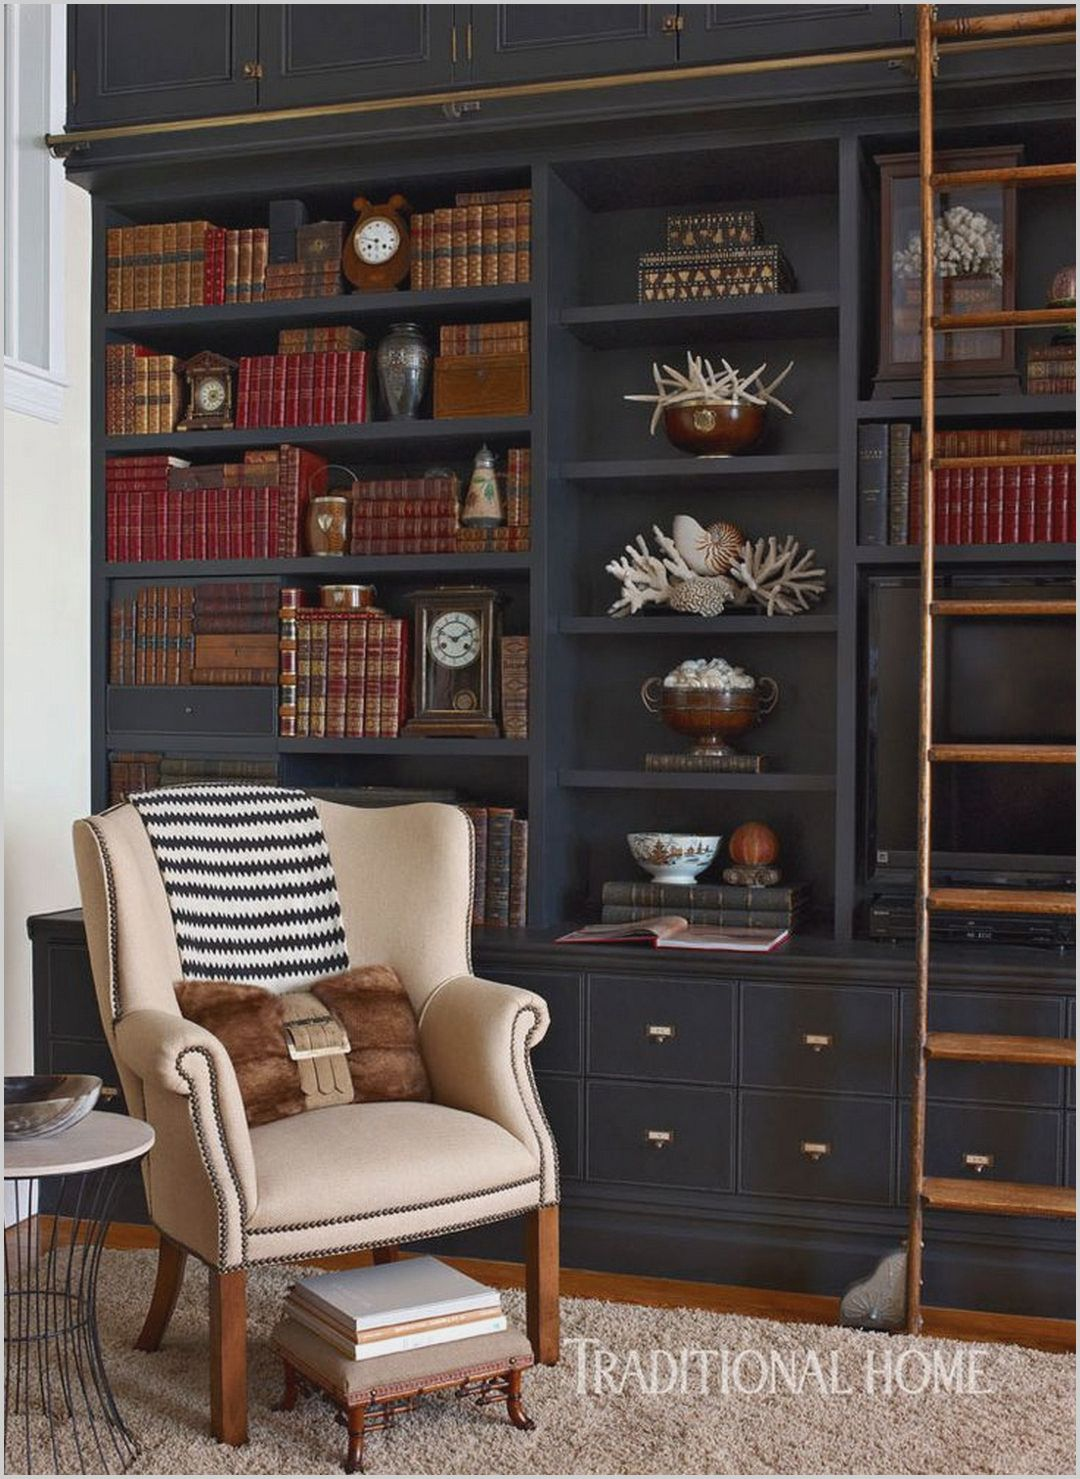 Cool Home Library Ideas: Pin By Adam Bashian On Interior Design In 2020